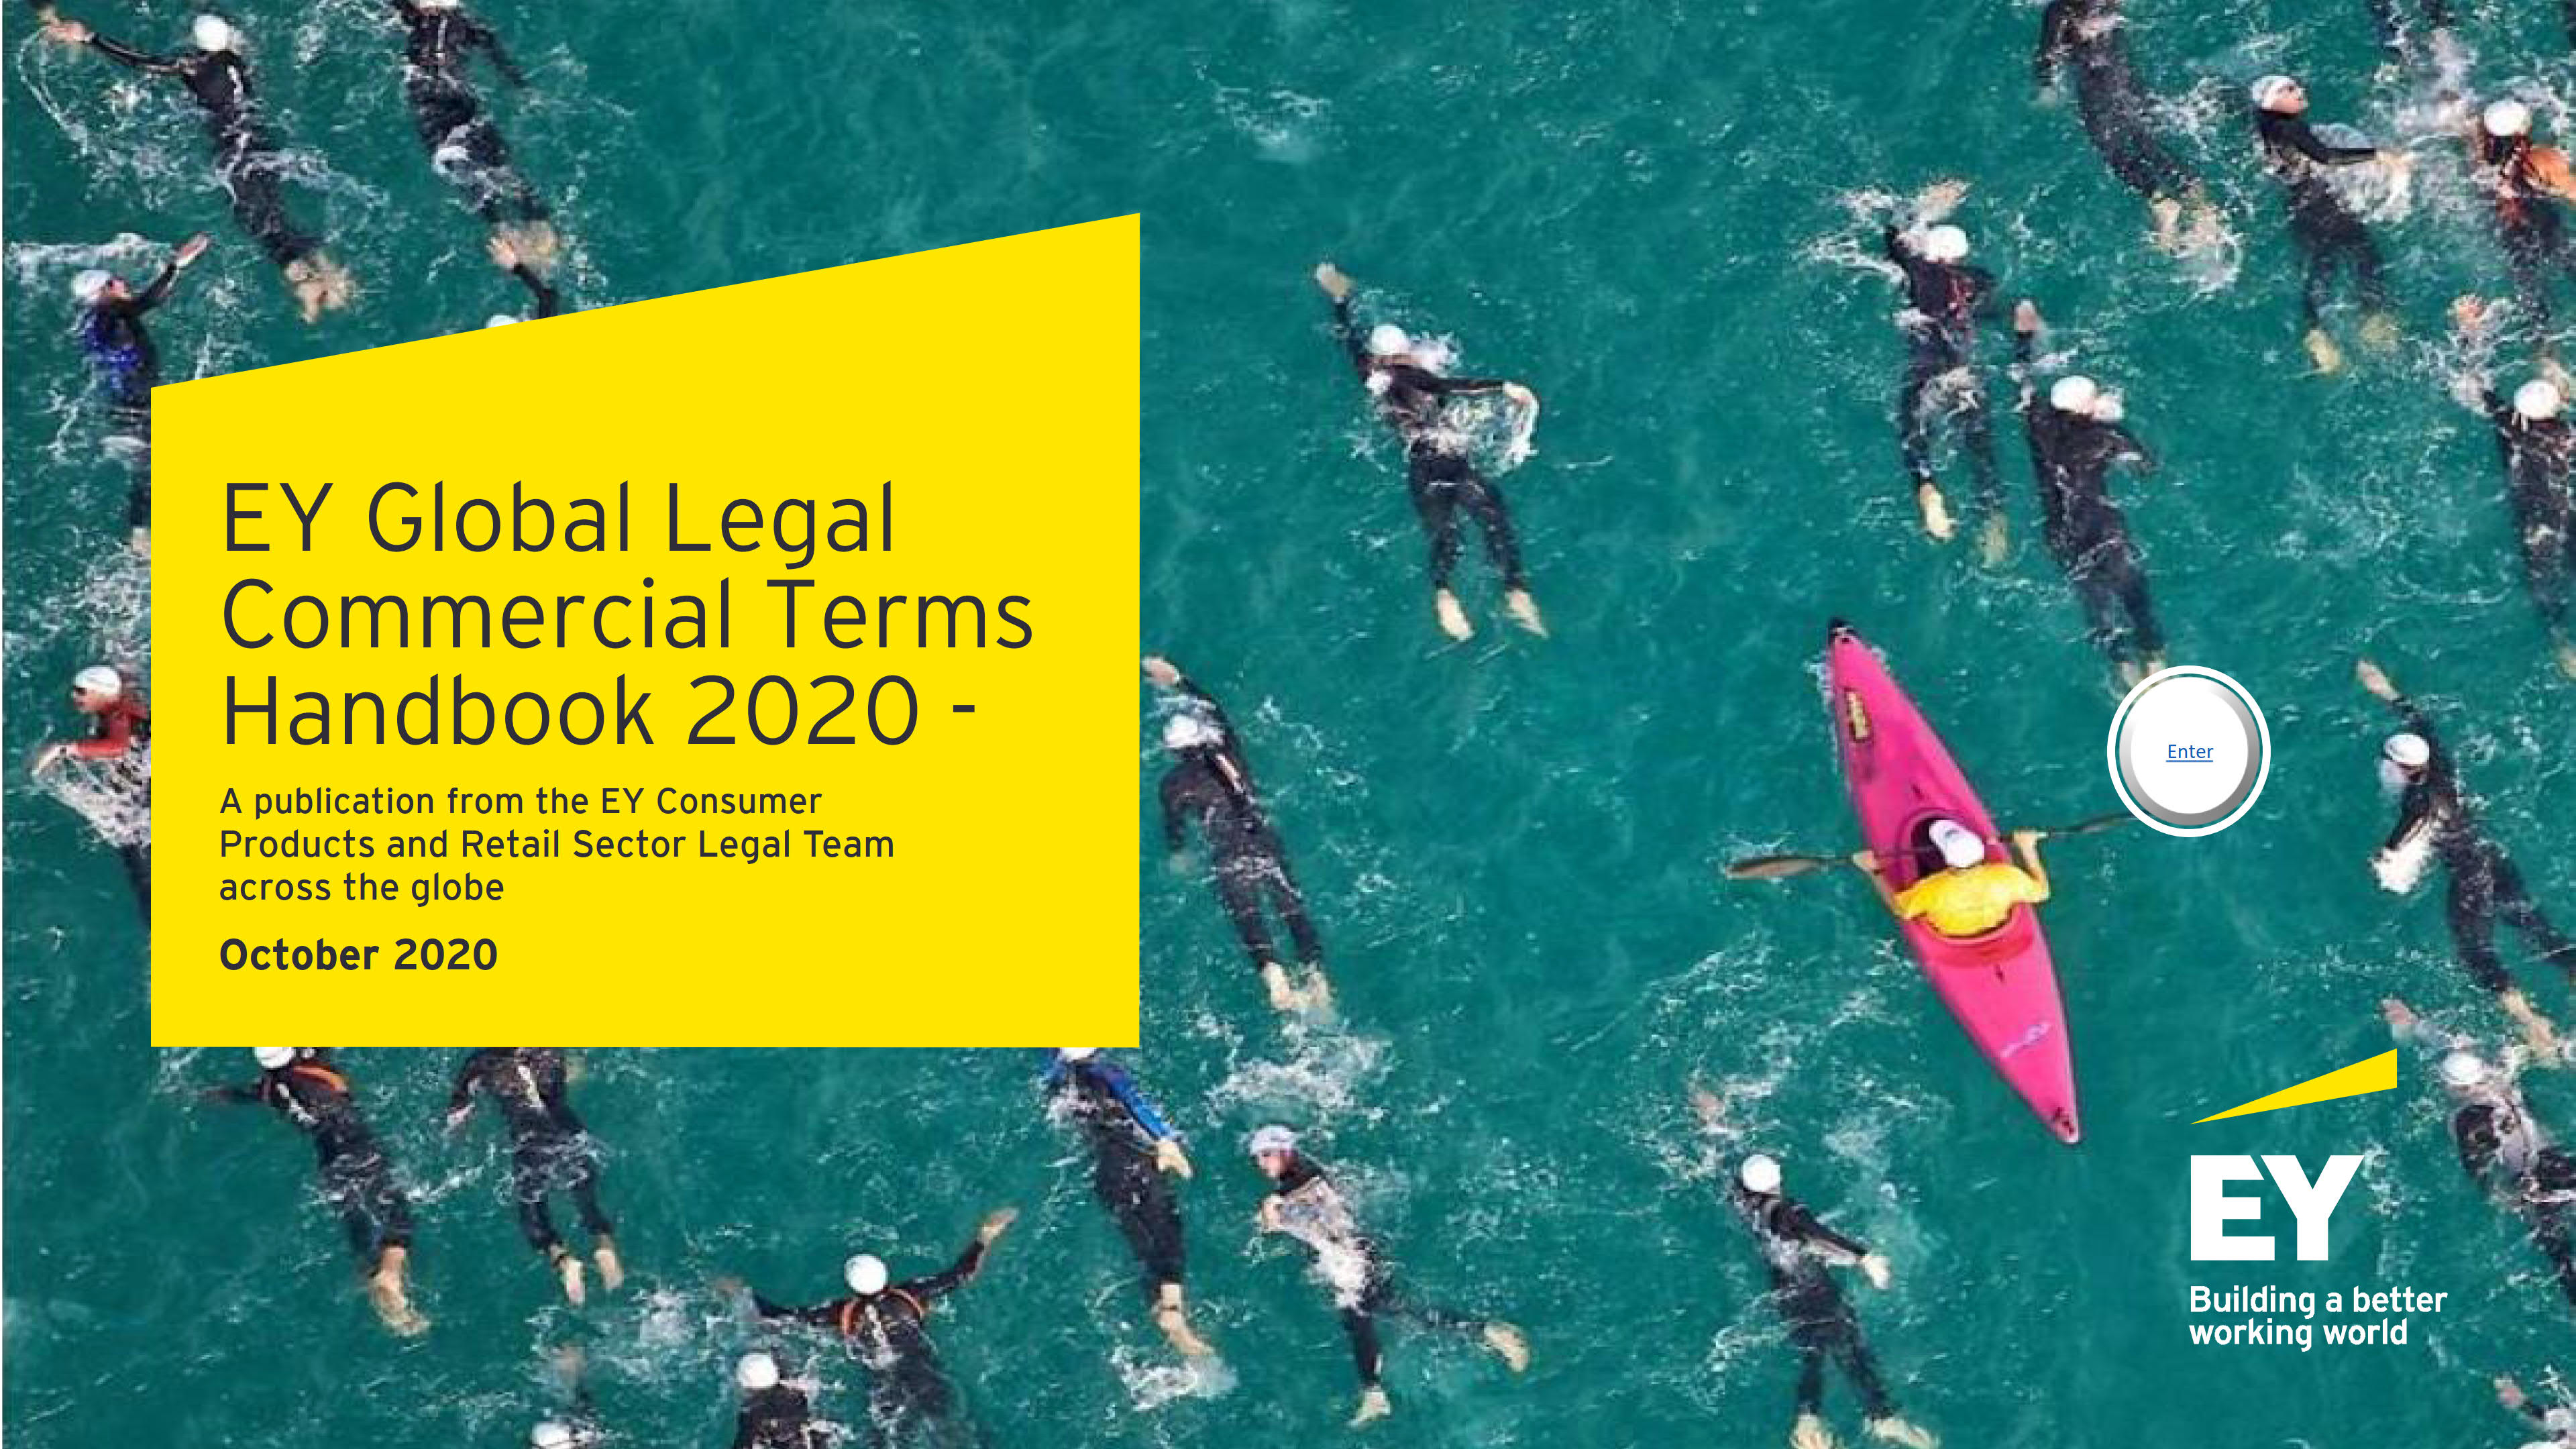 EY Global Legal Commercial Terms Handbook 2020 Second Edition